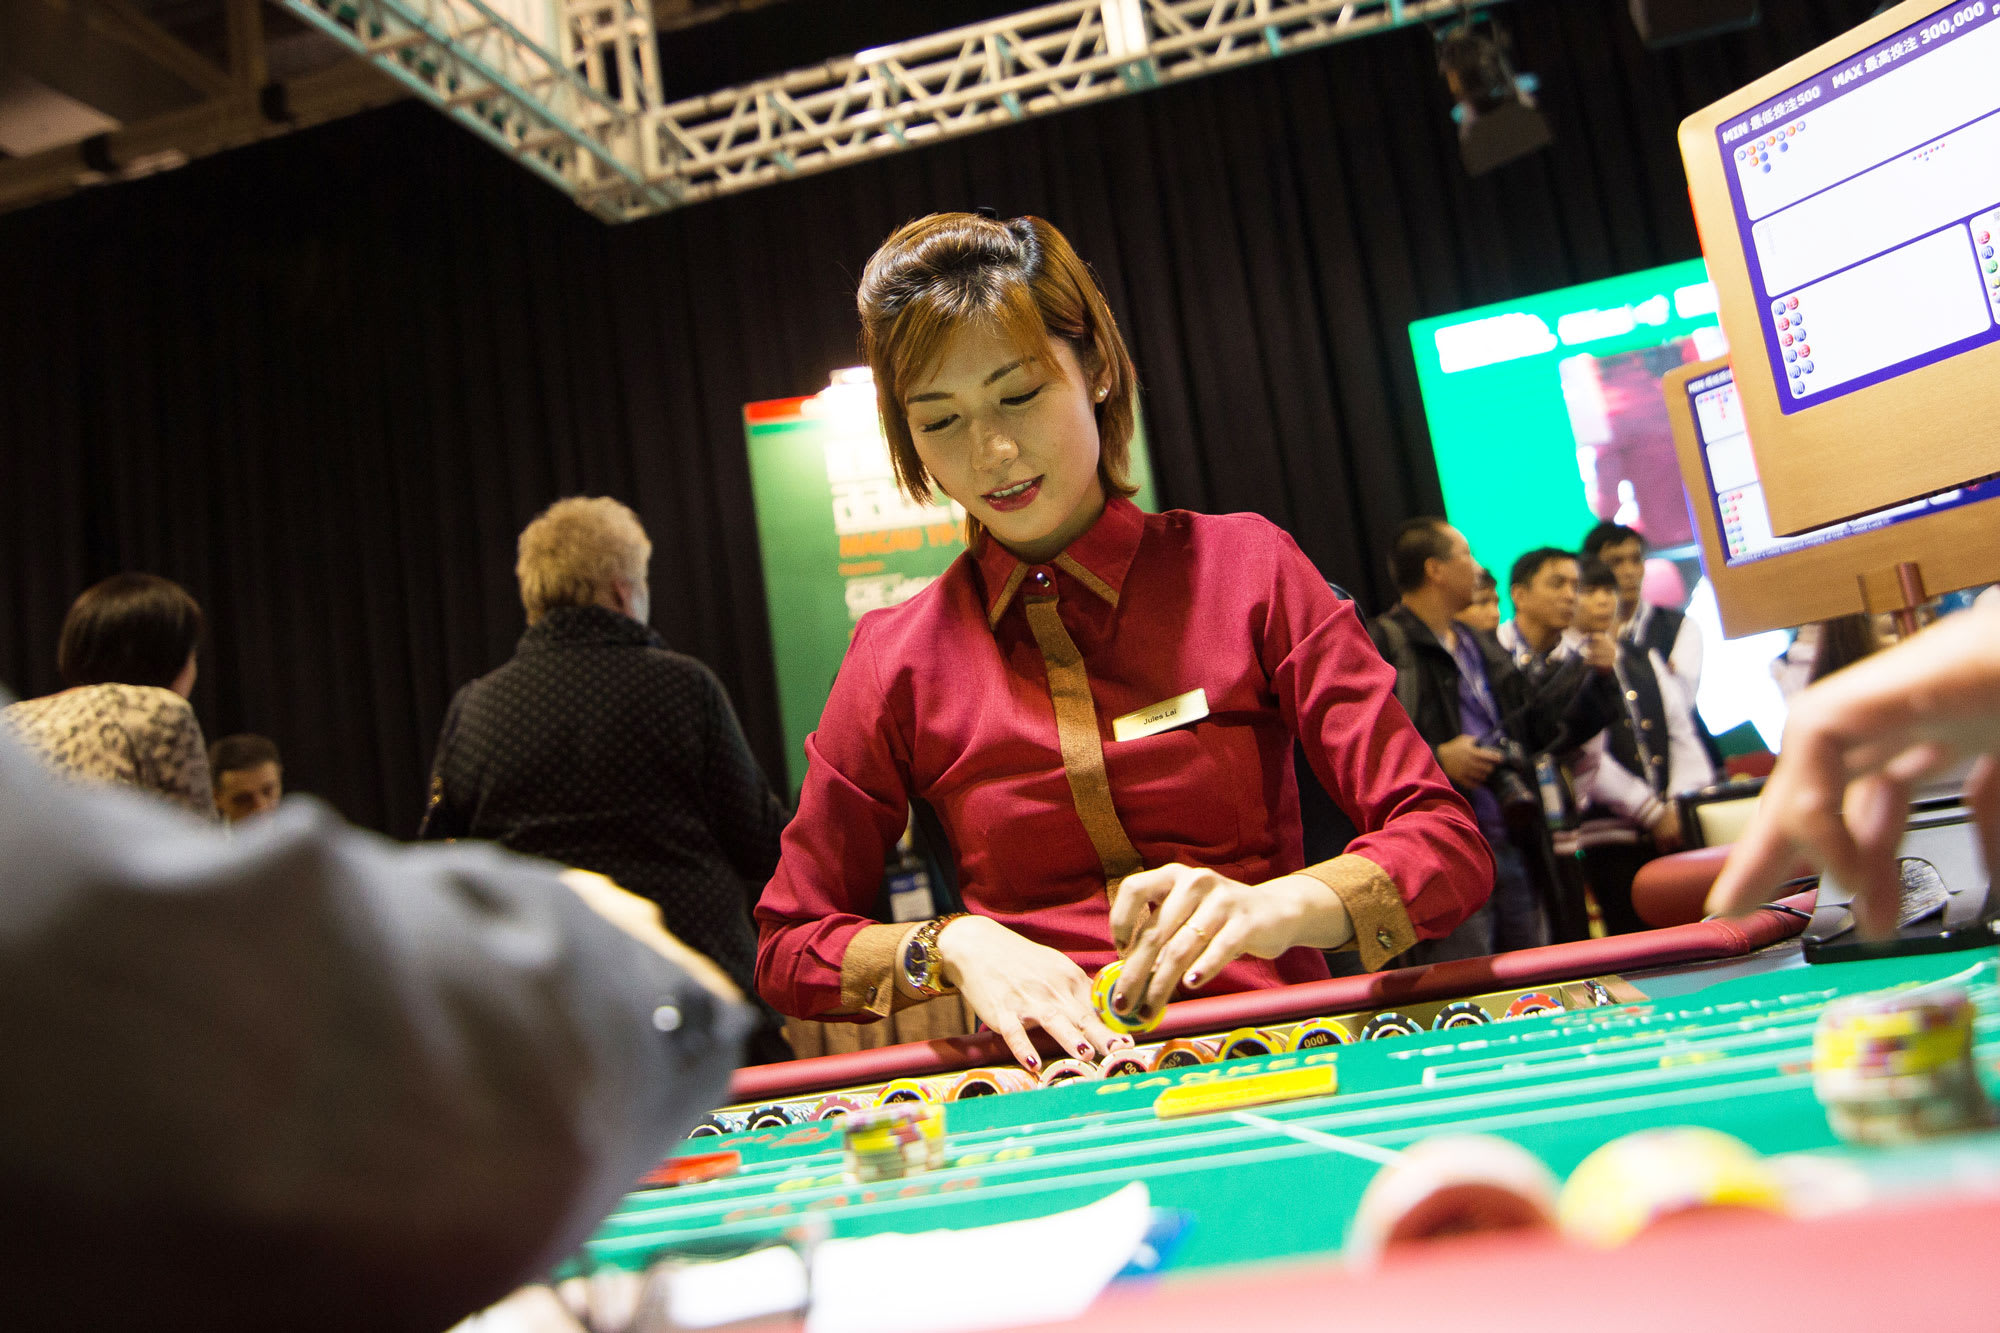 The Advantages Of Sports Betting - Why Should You Bank On Sports?